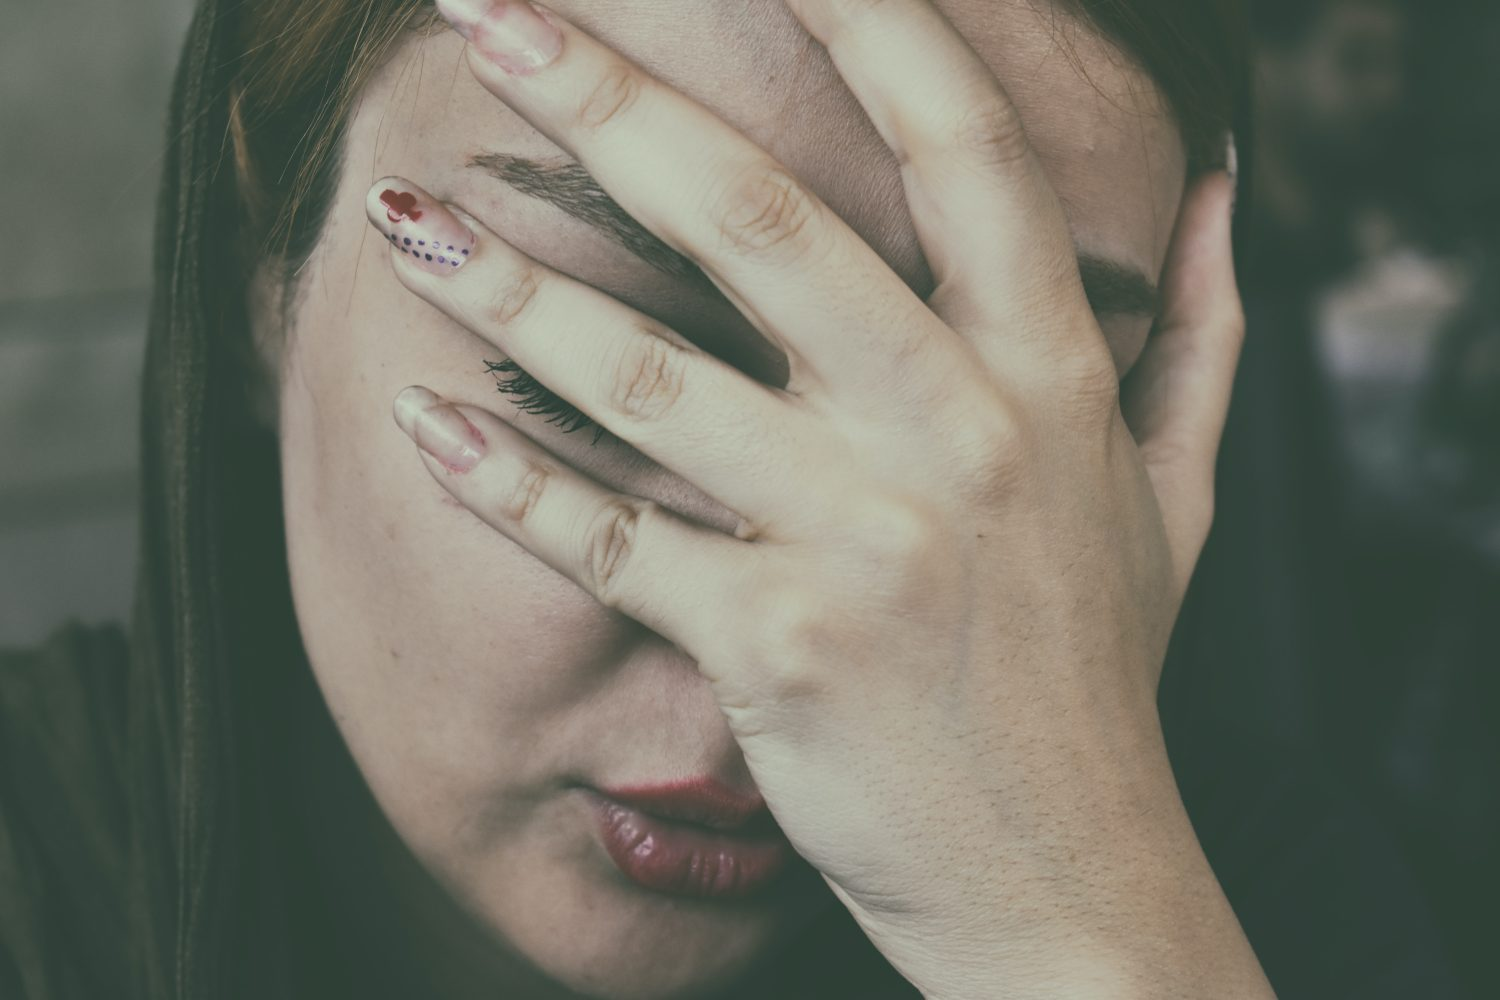 Be Careful With Your Words: Anxiety And Verbal Abuse Are Connected